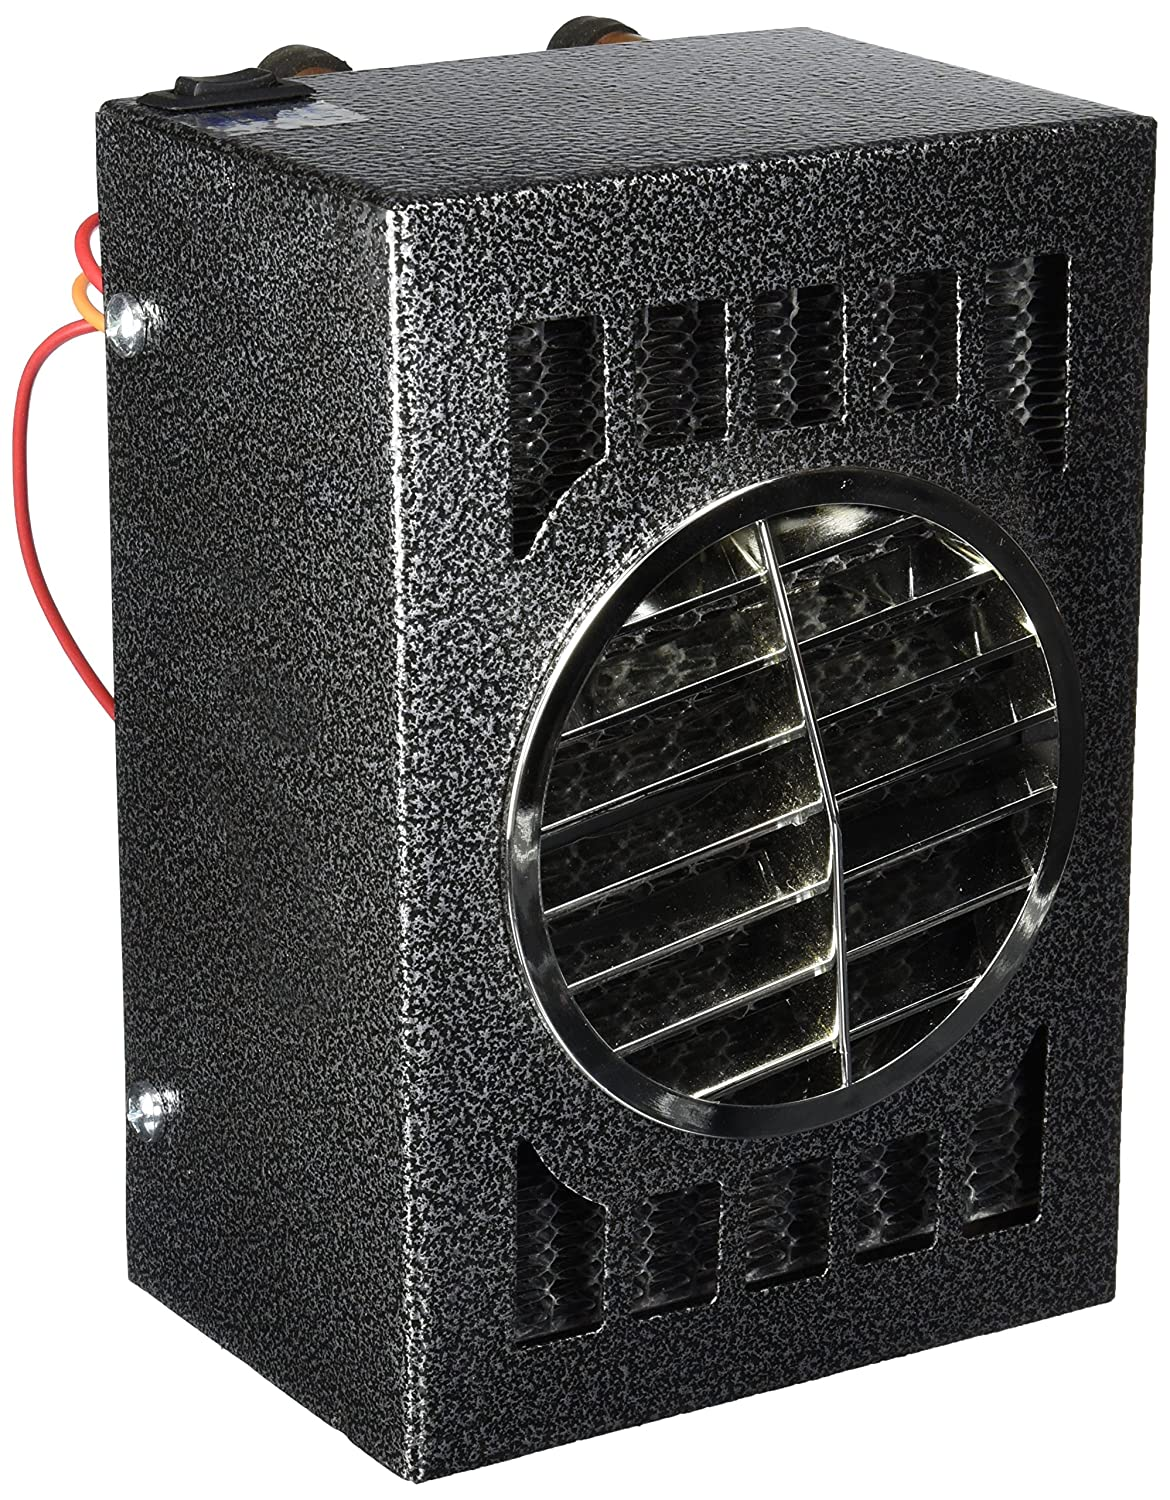 Northern Radiator AH474 Auxiliary Heater